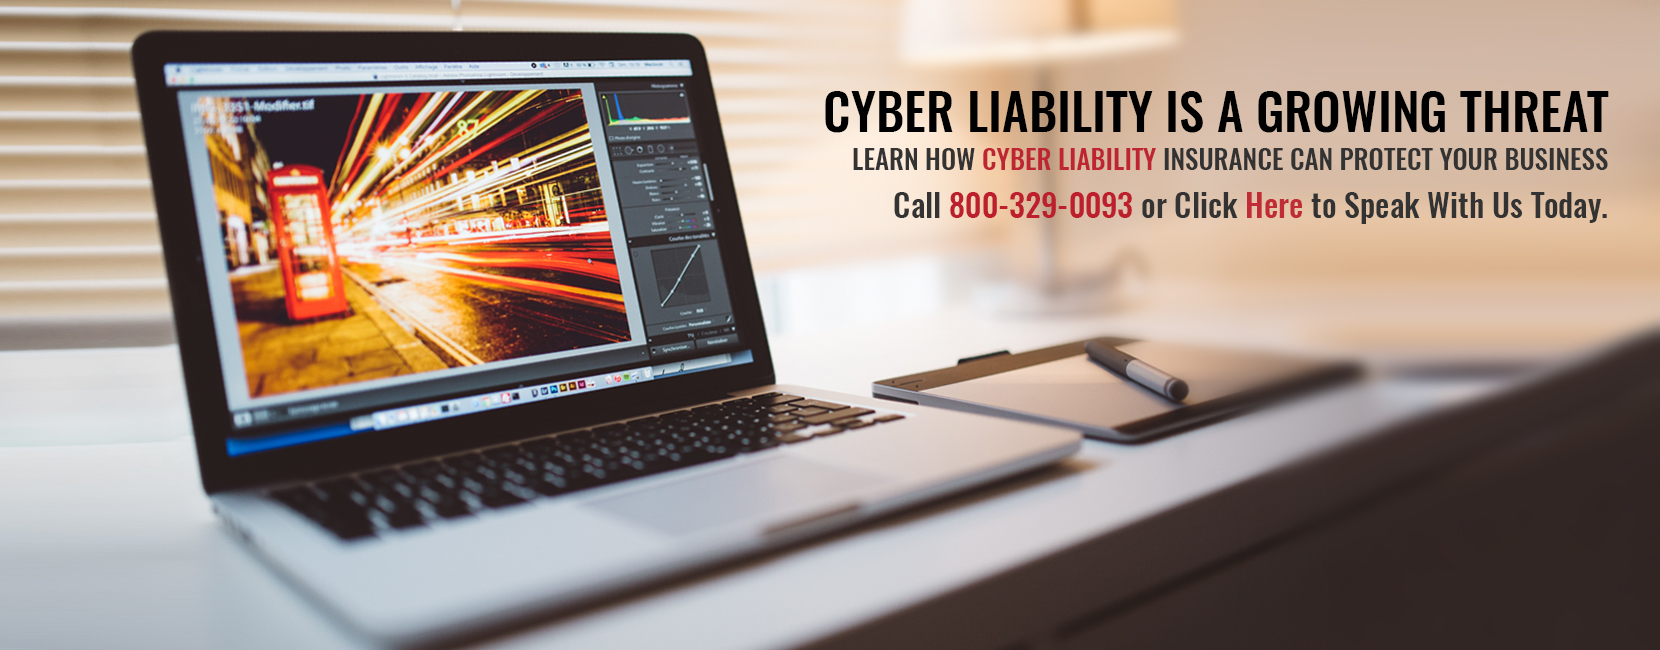 Strong Tower Slider - Call 800-329-0093 for a cyber liability insurance quote